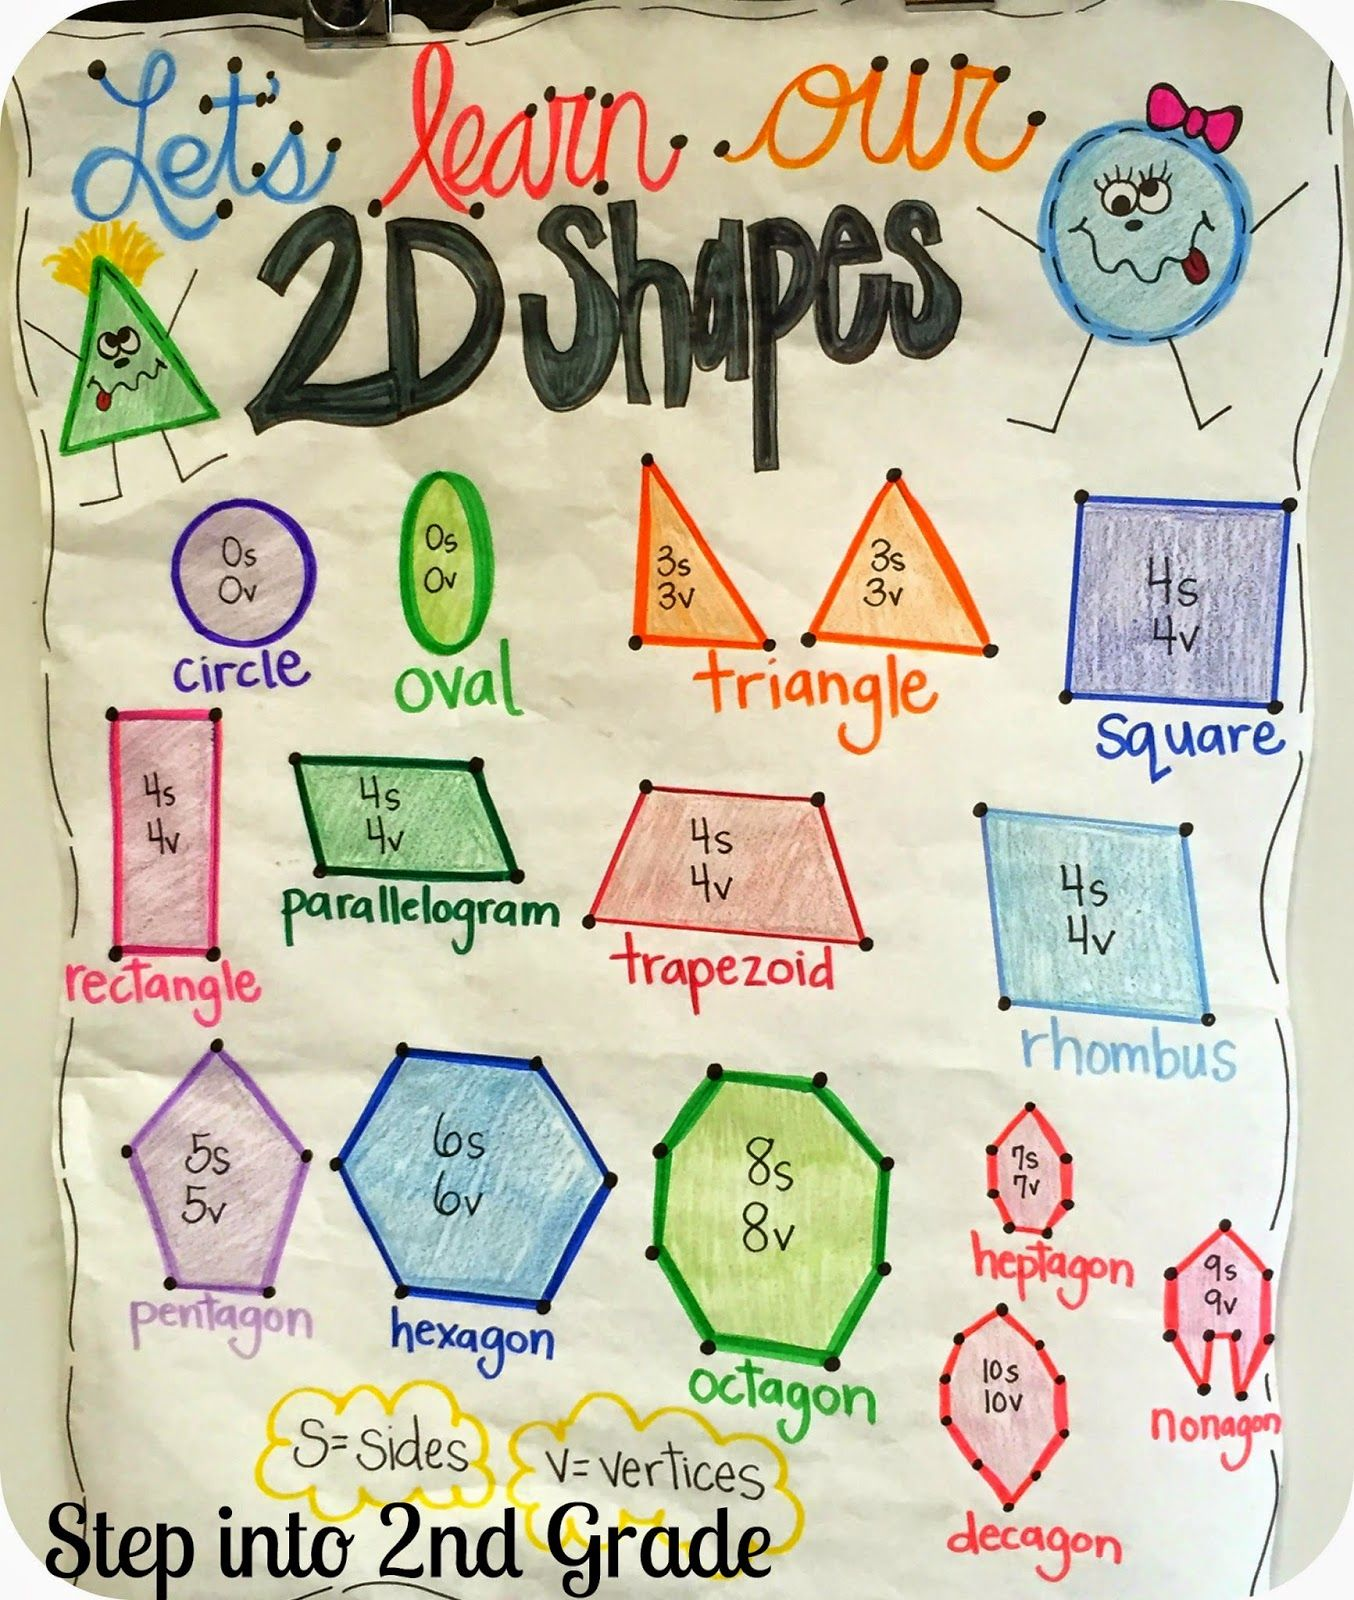 worksheet 2nd Grade shapes anchor chart by step into 2nd grade with mrs lemons lemons